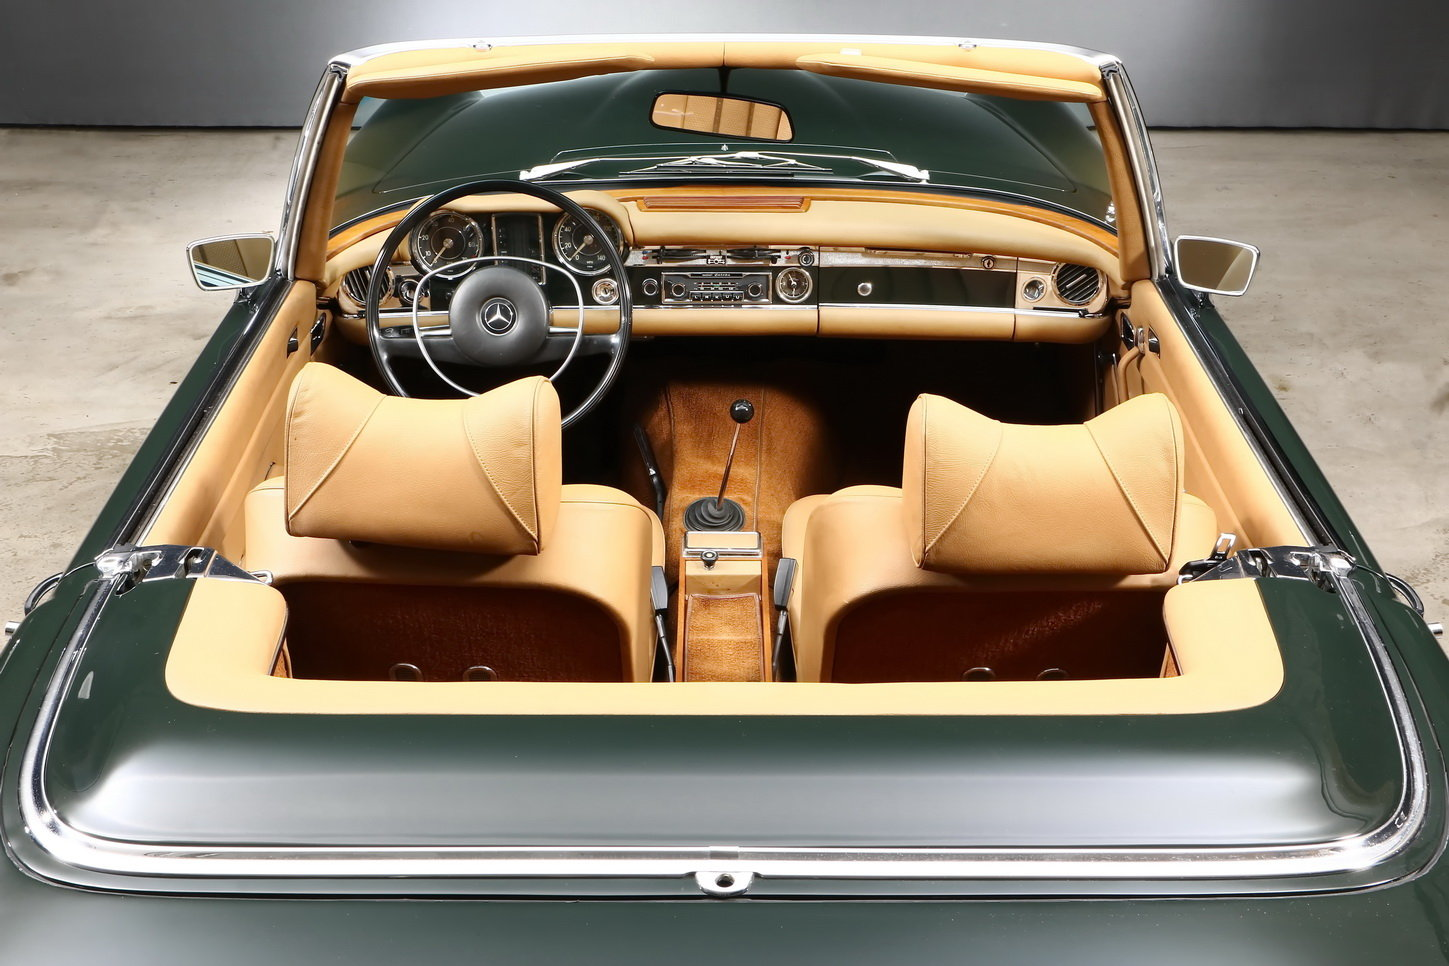 1971 Mercedes-Benz 280 SL Roadster For Sale (picture 6 of 6)